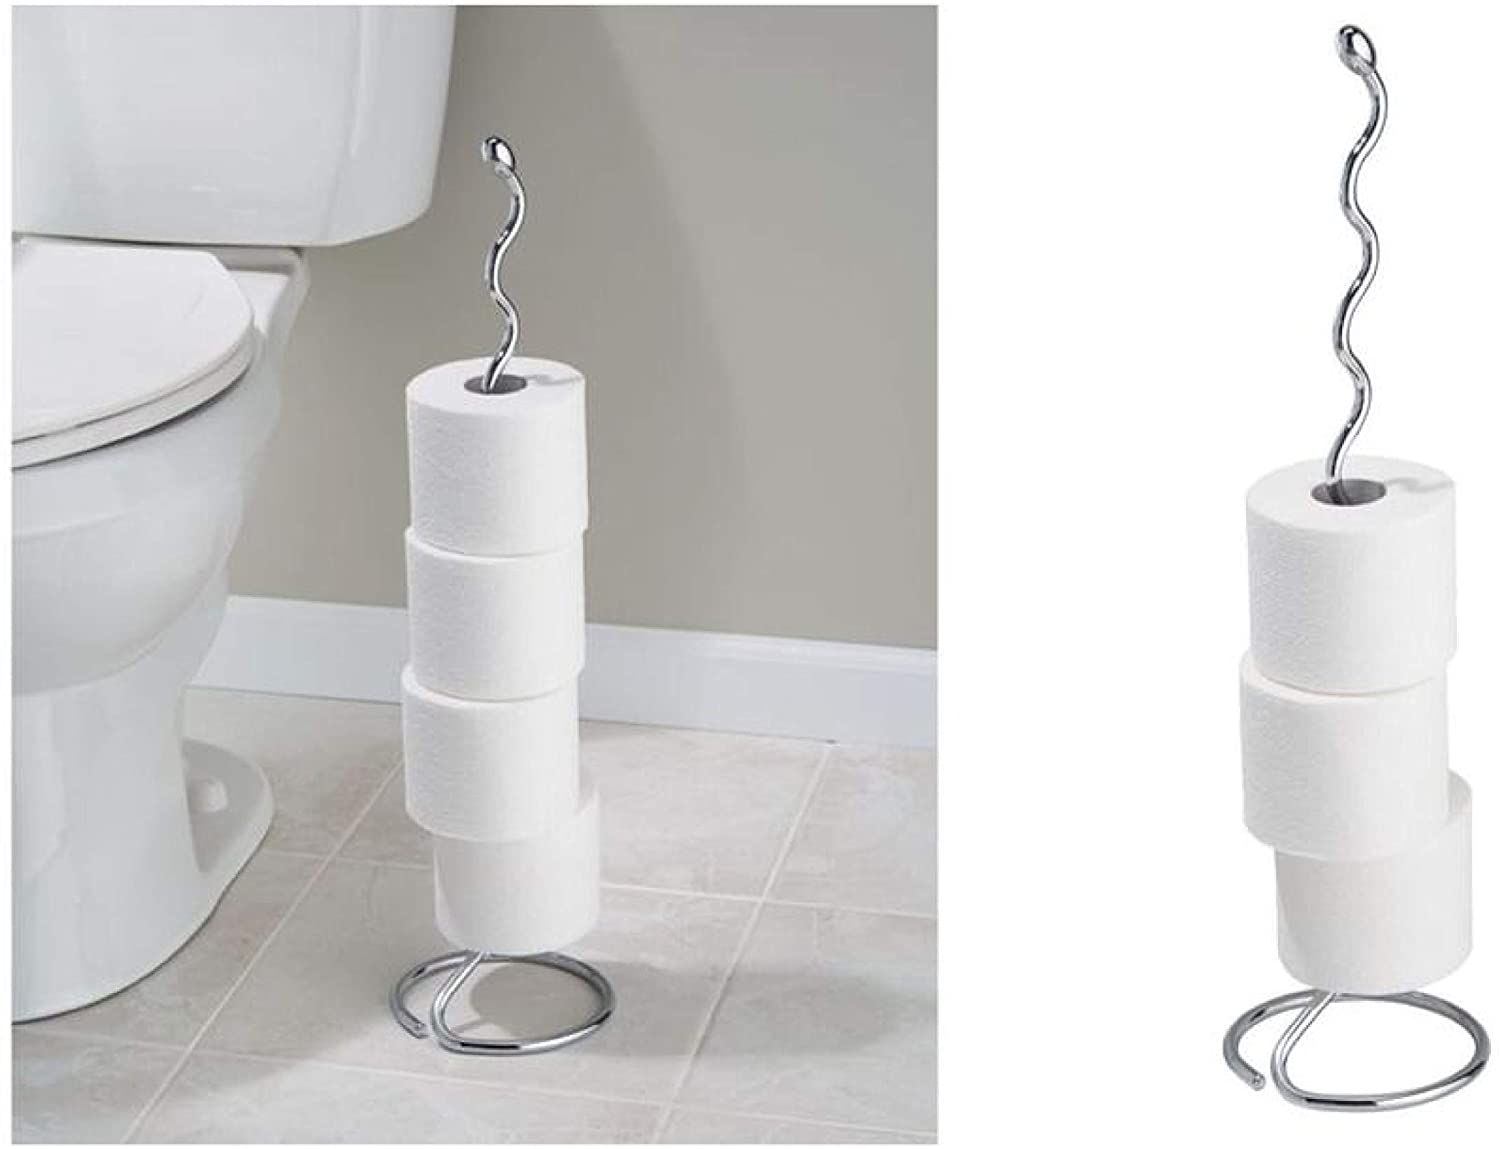 Idesign 68600eu Orbinni Metal Toilet Tissue Roll Reserve For Bathroom Compact Squiggle Organizer Caddy Holds 4 Rolls Of Paper Chrome Home Kitchen